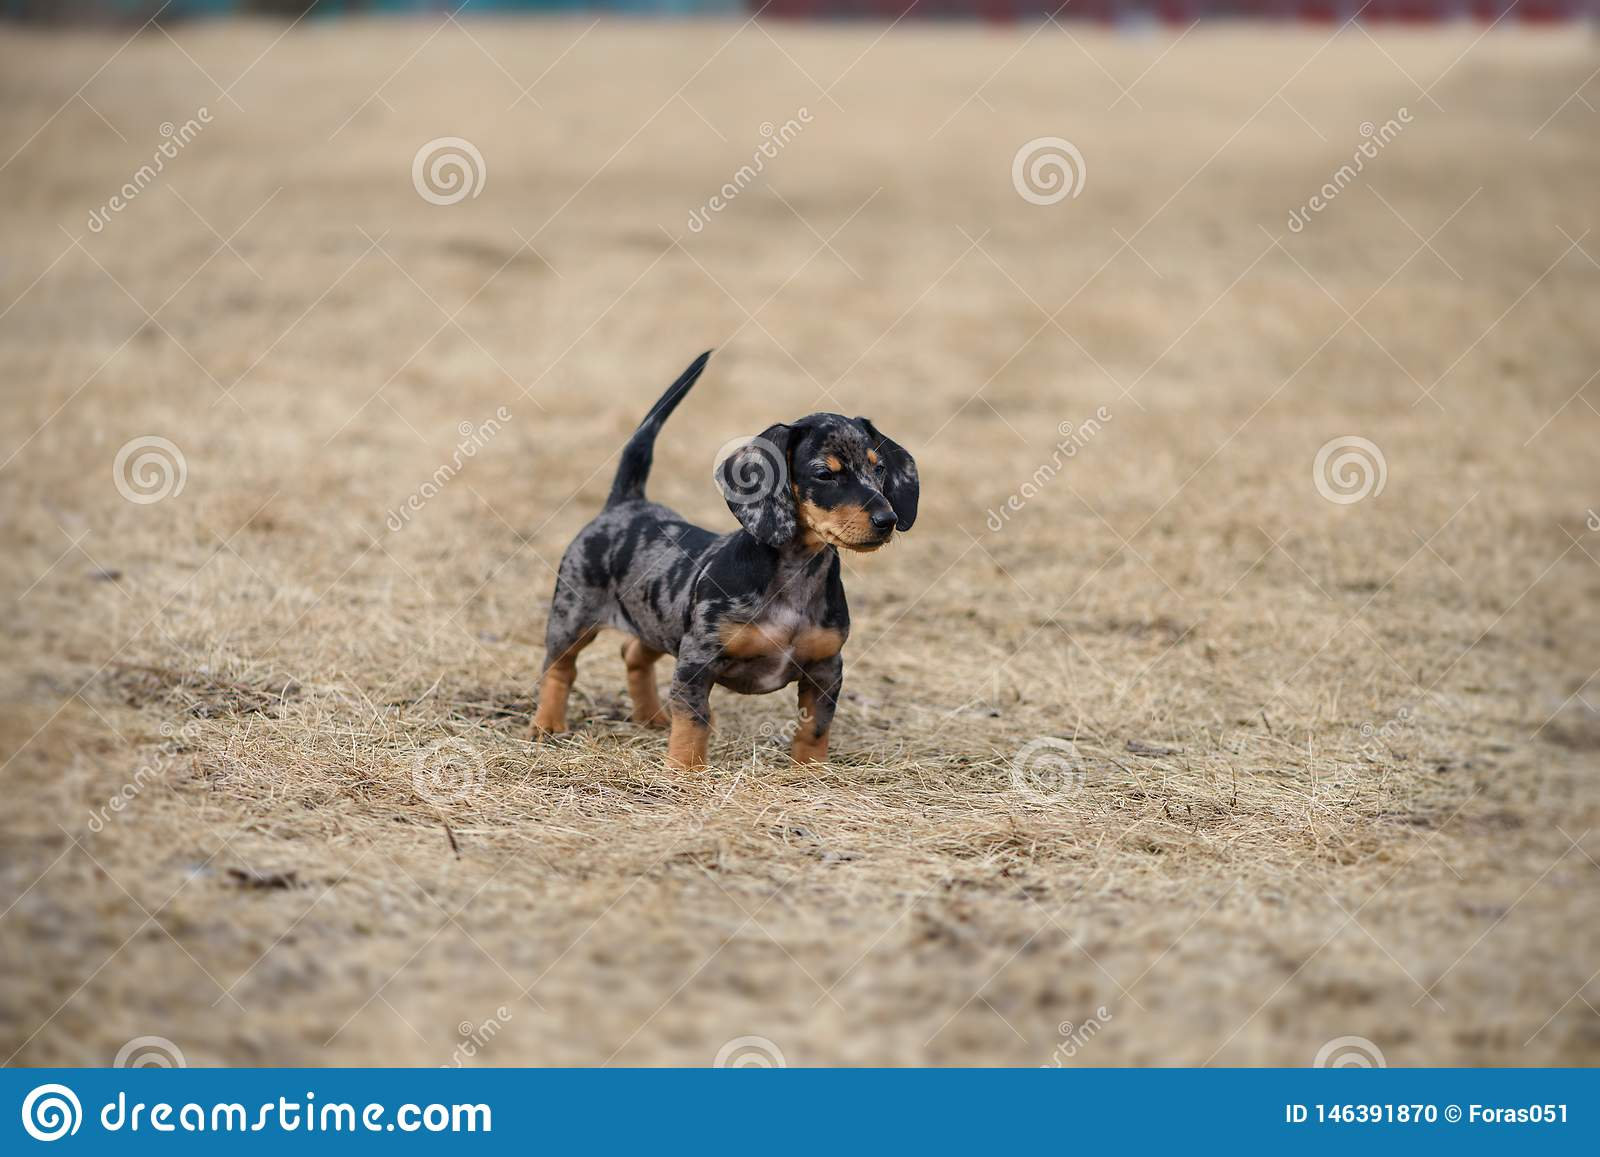 Dachshund Puppy With Blue Eye Stock Photo Image Of Adorable Breed 146391870